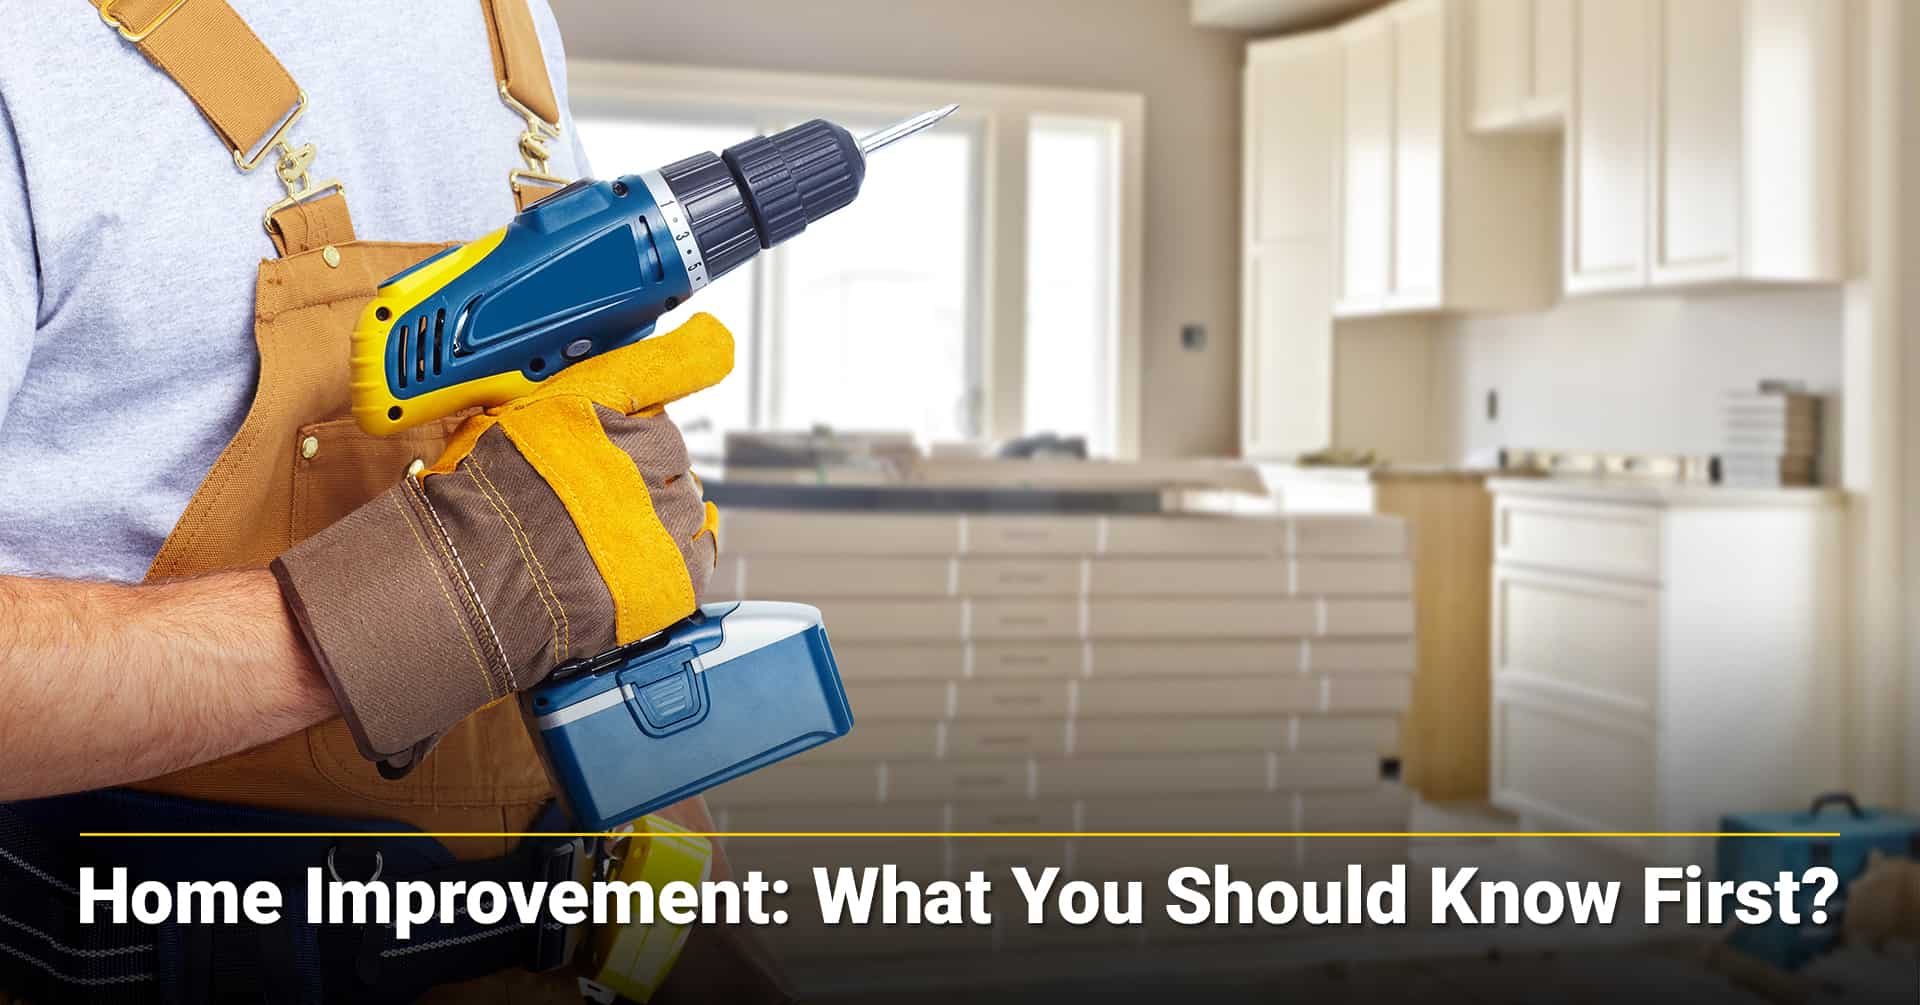 Home Improvement: What You Should Know First?